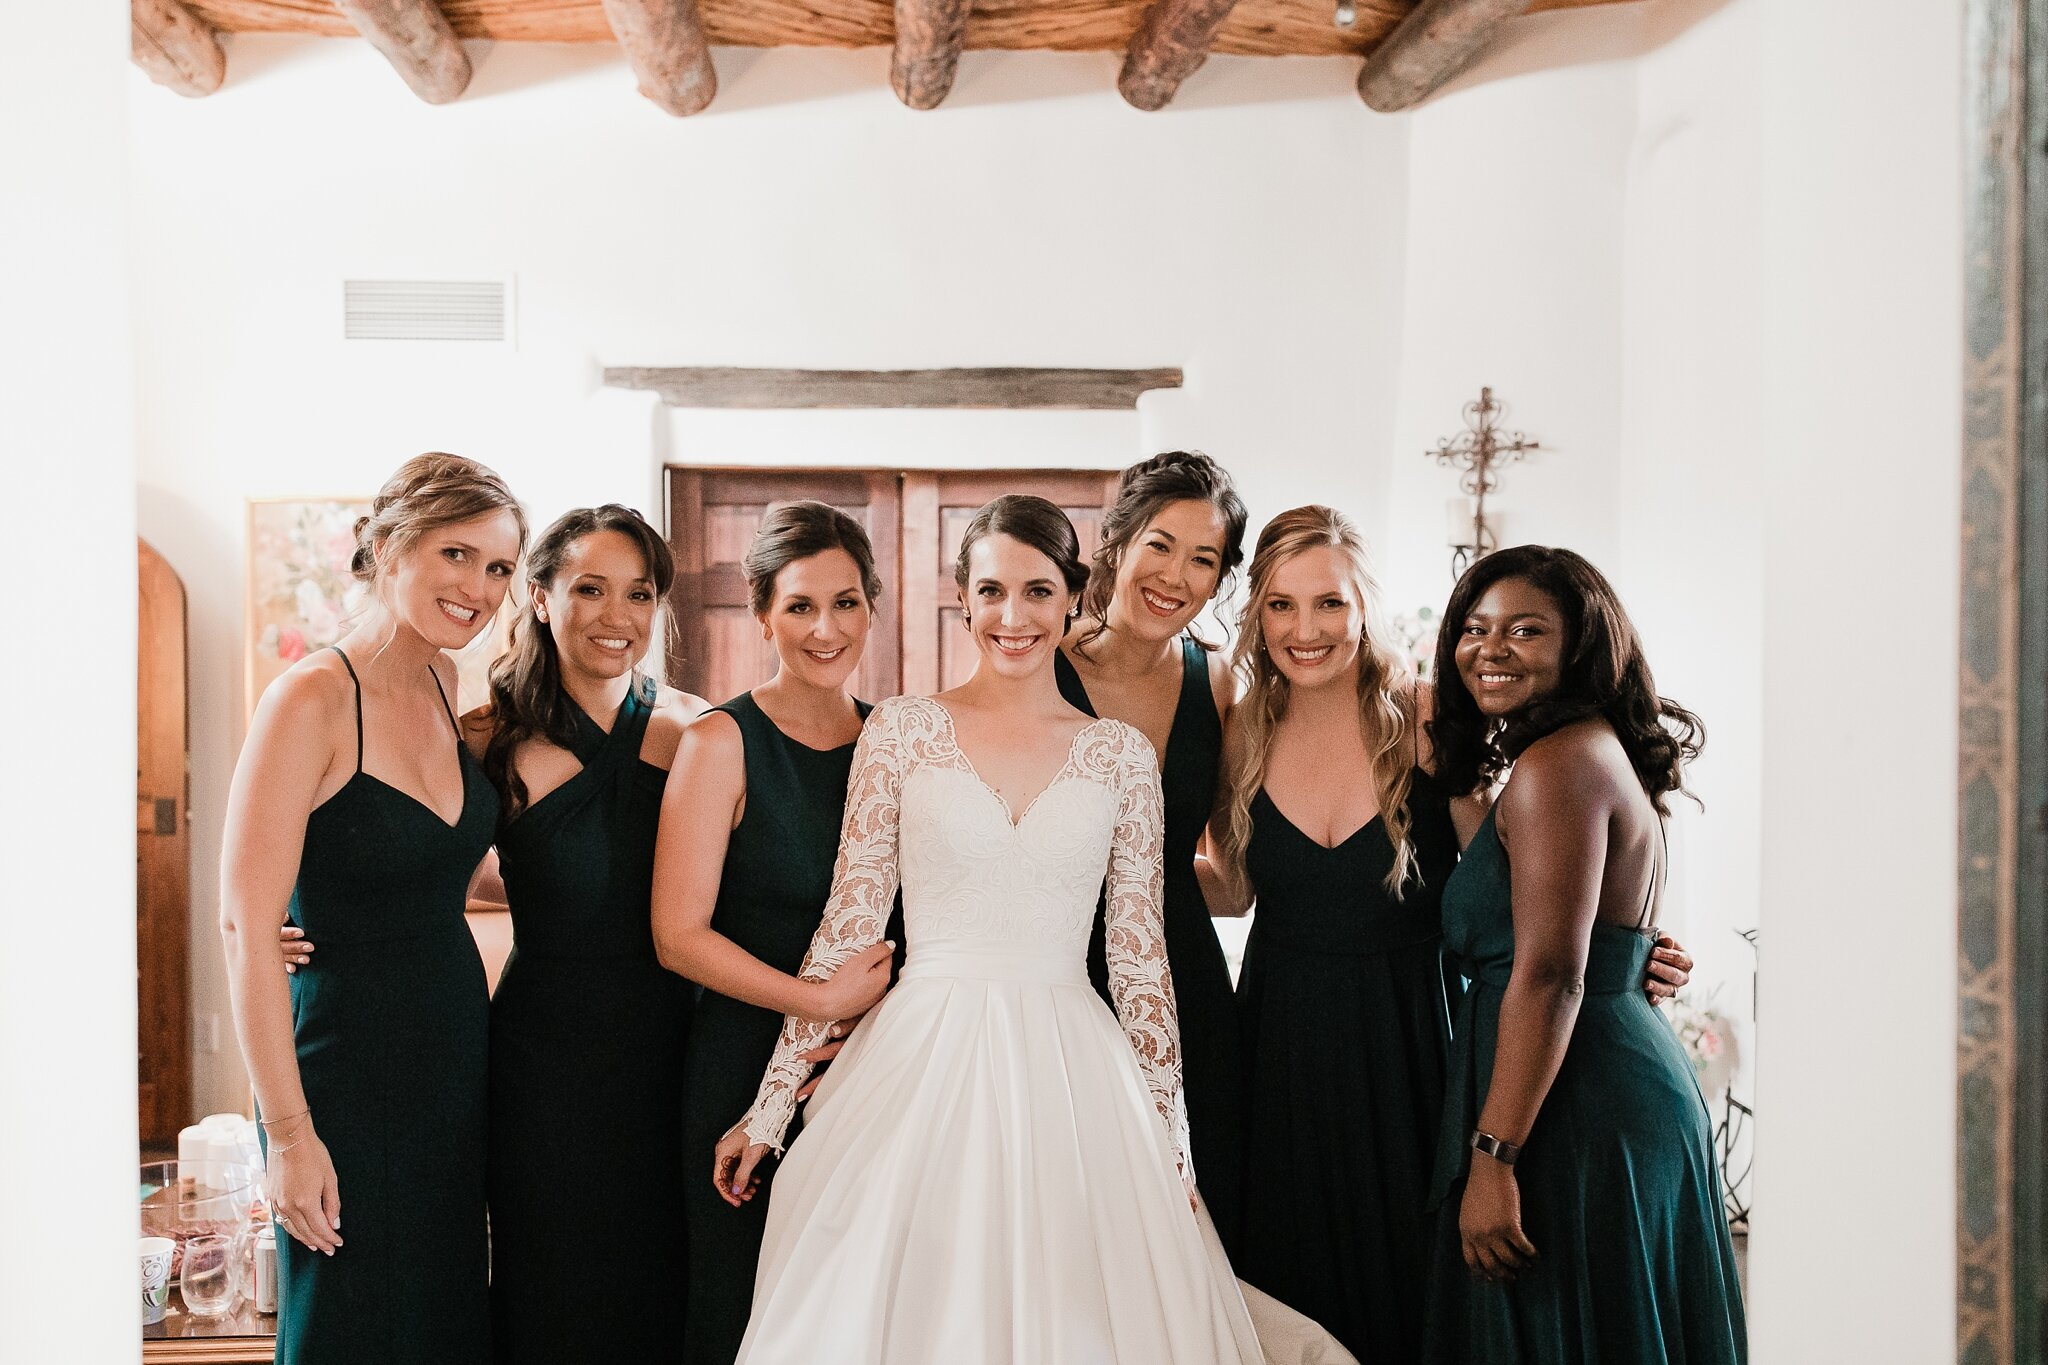 Alicia+lucia+photography+-+albuquerque+wedding+photographer+-+santa+fe+wedding+photography+-+new+mexico+wedding+photographer+-+new+mexico+wedding+-+hindu+wedding+-+catholic+wedding+-+multicultural+wedding+-+santa+fe+wedding_0014.jpg